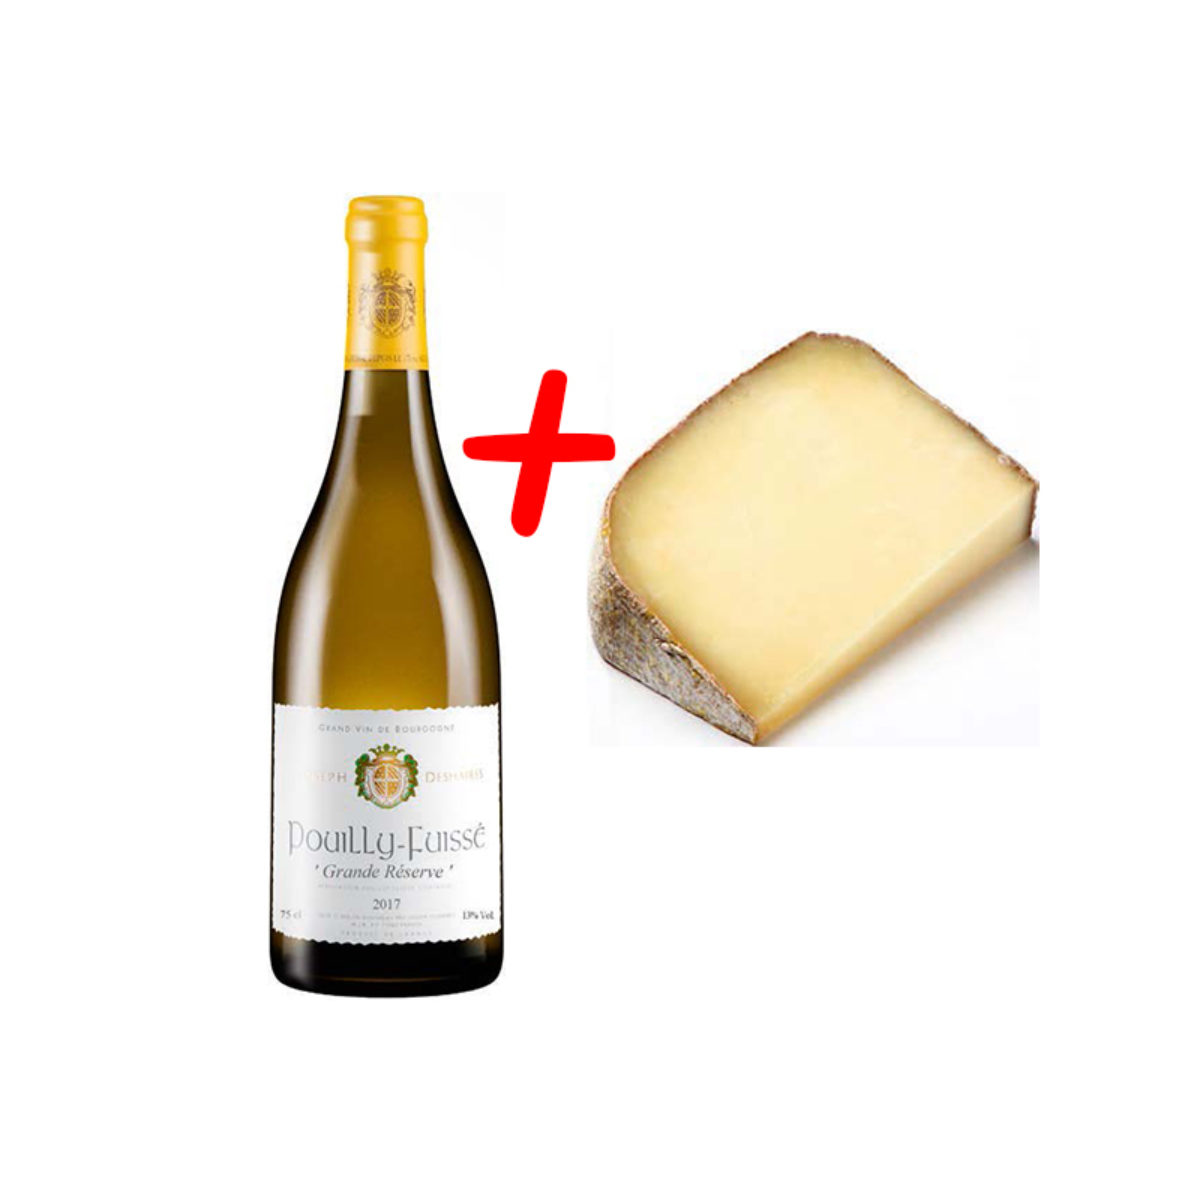 Duo vin fromage1